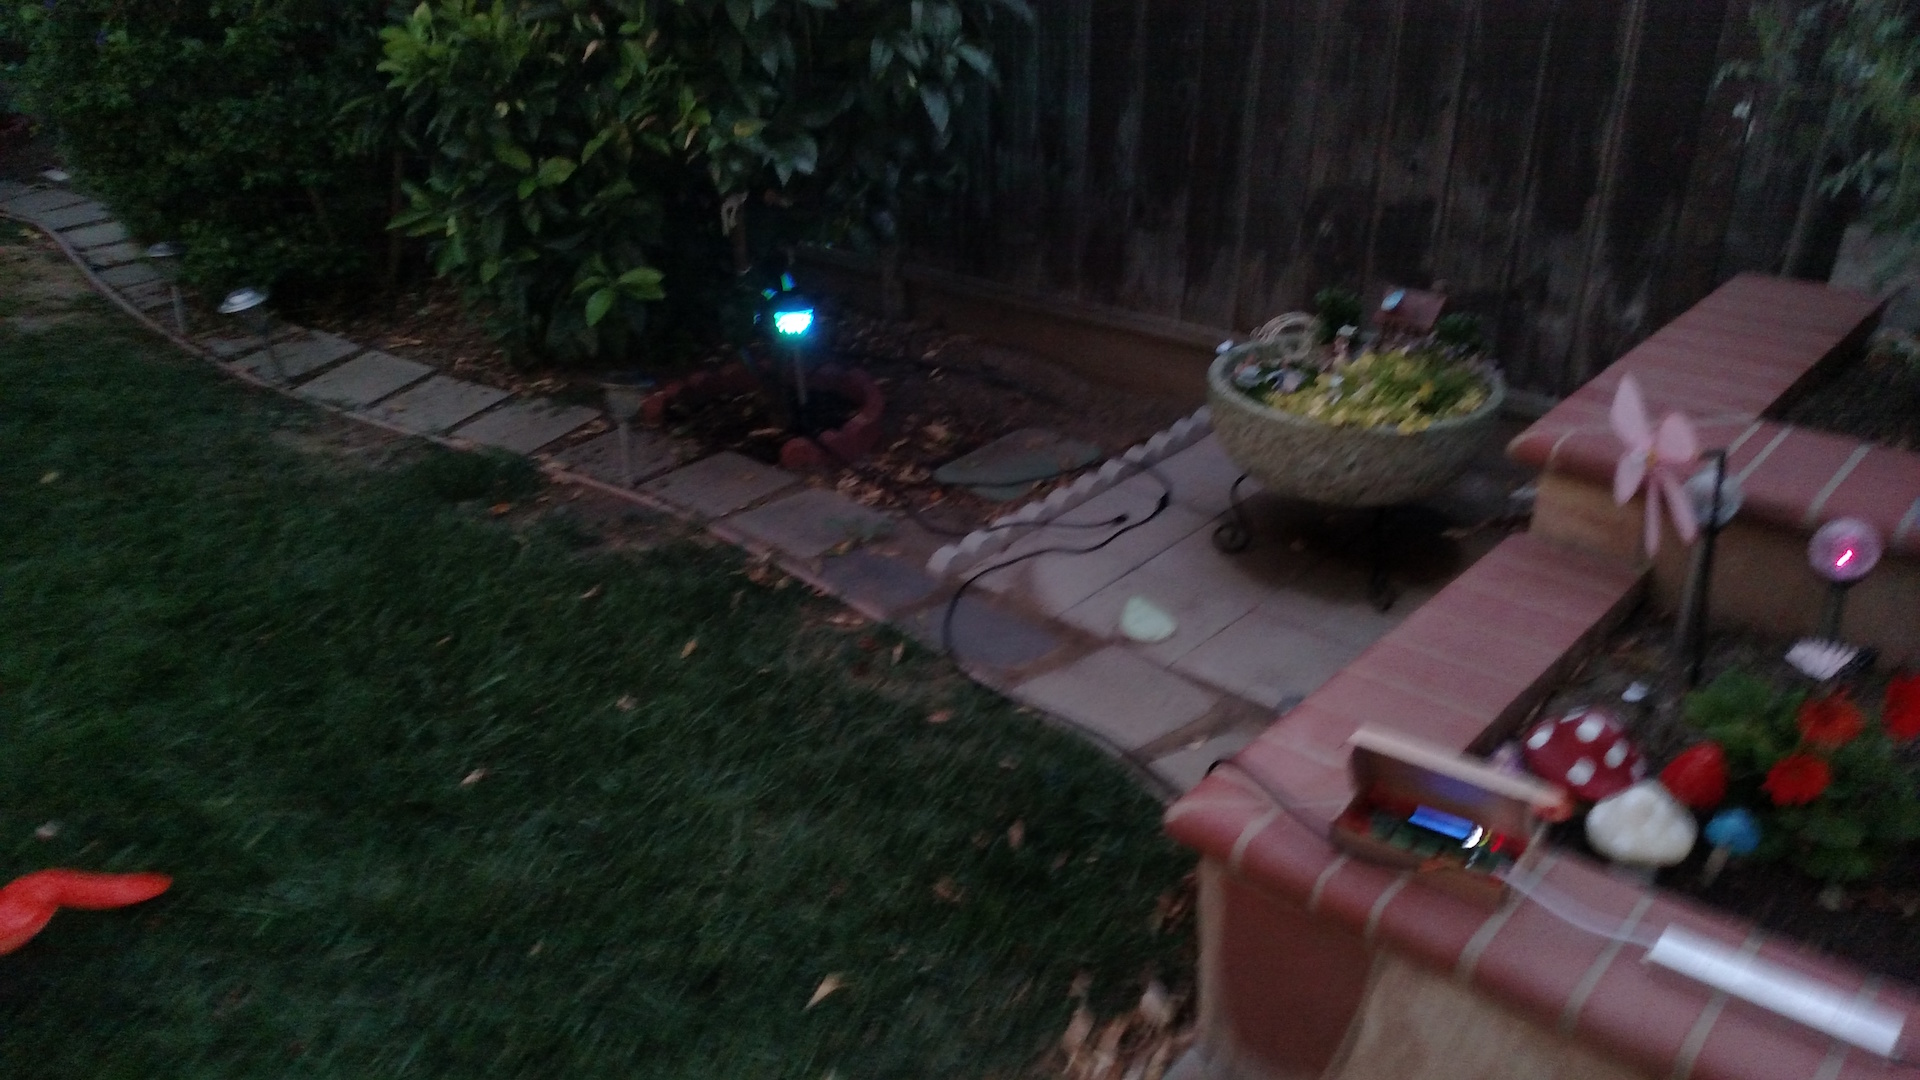 Project pixel garden pathway light conversion page 4 for Garden conversion